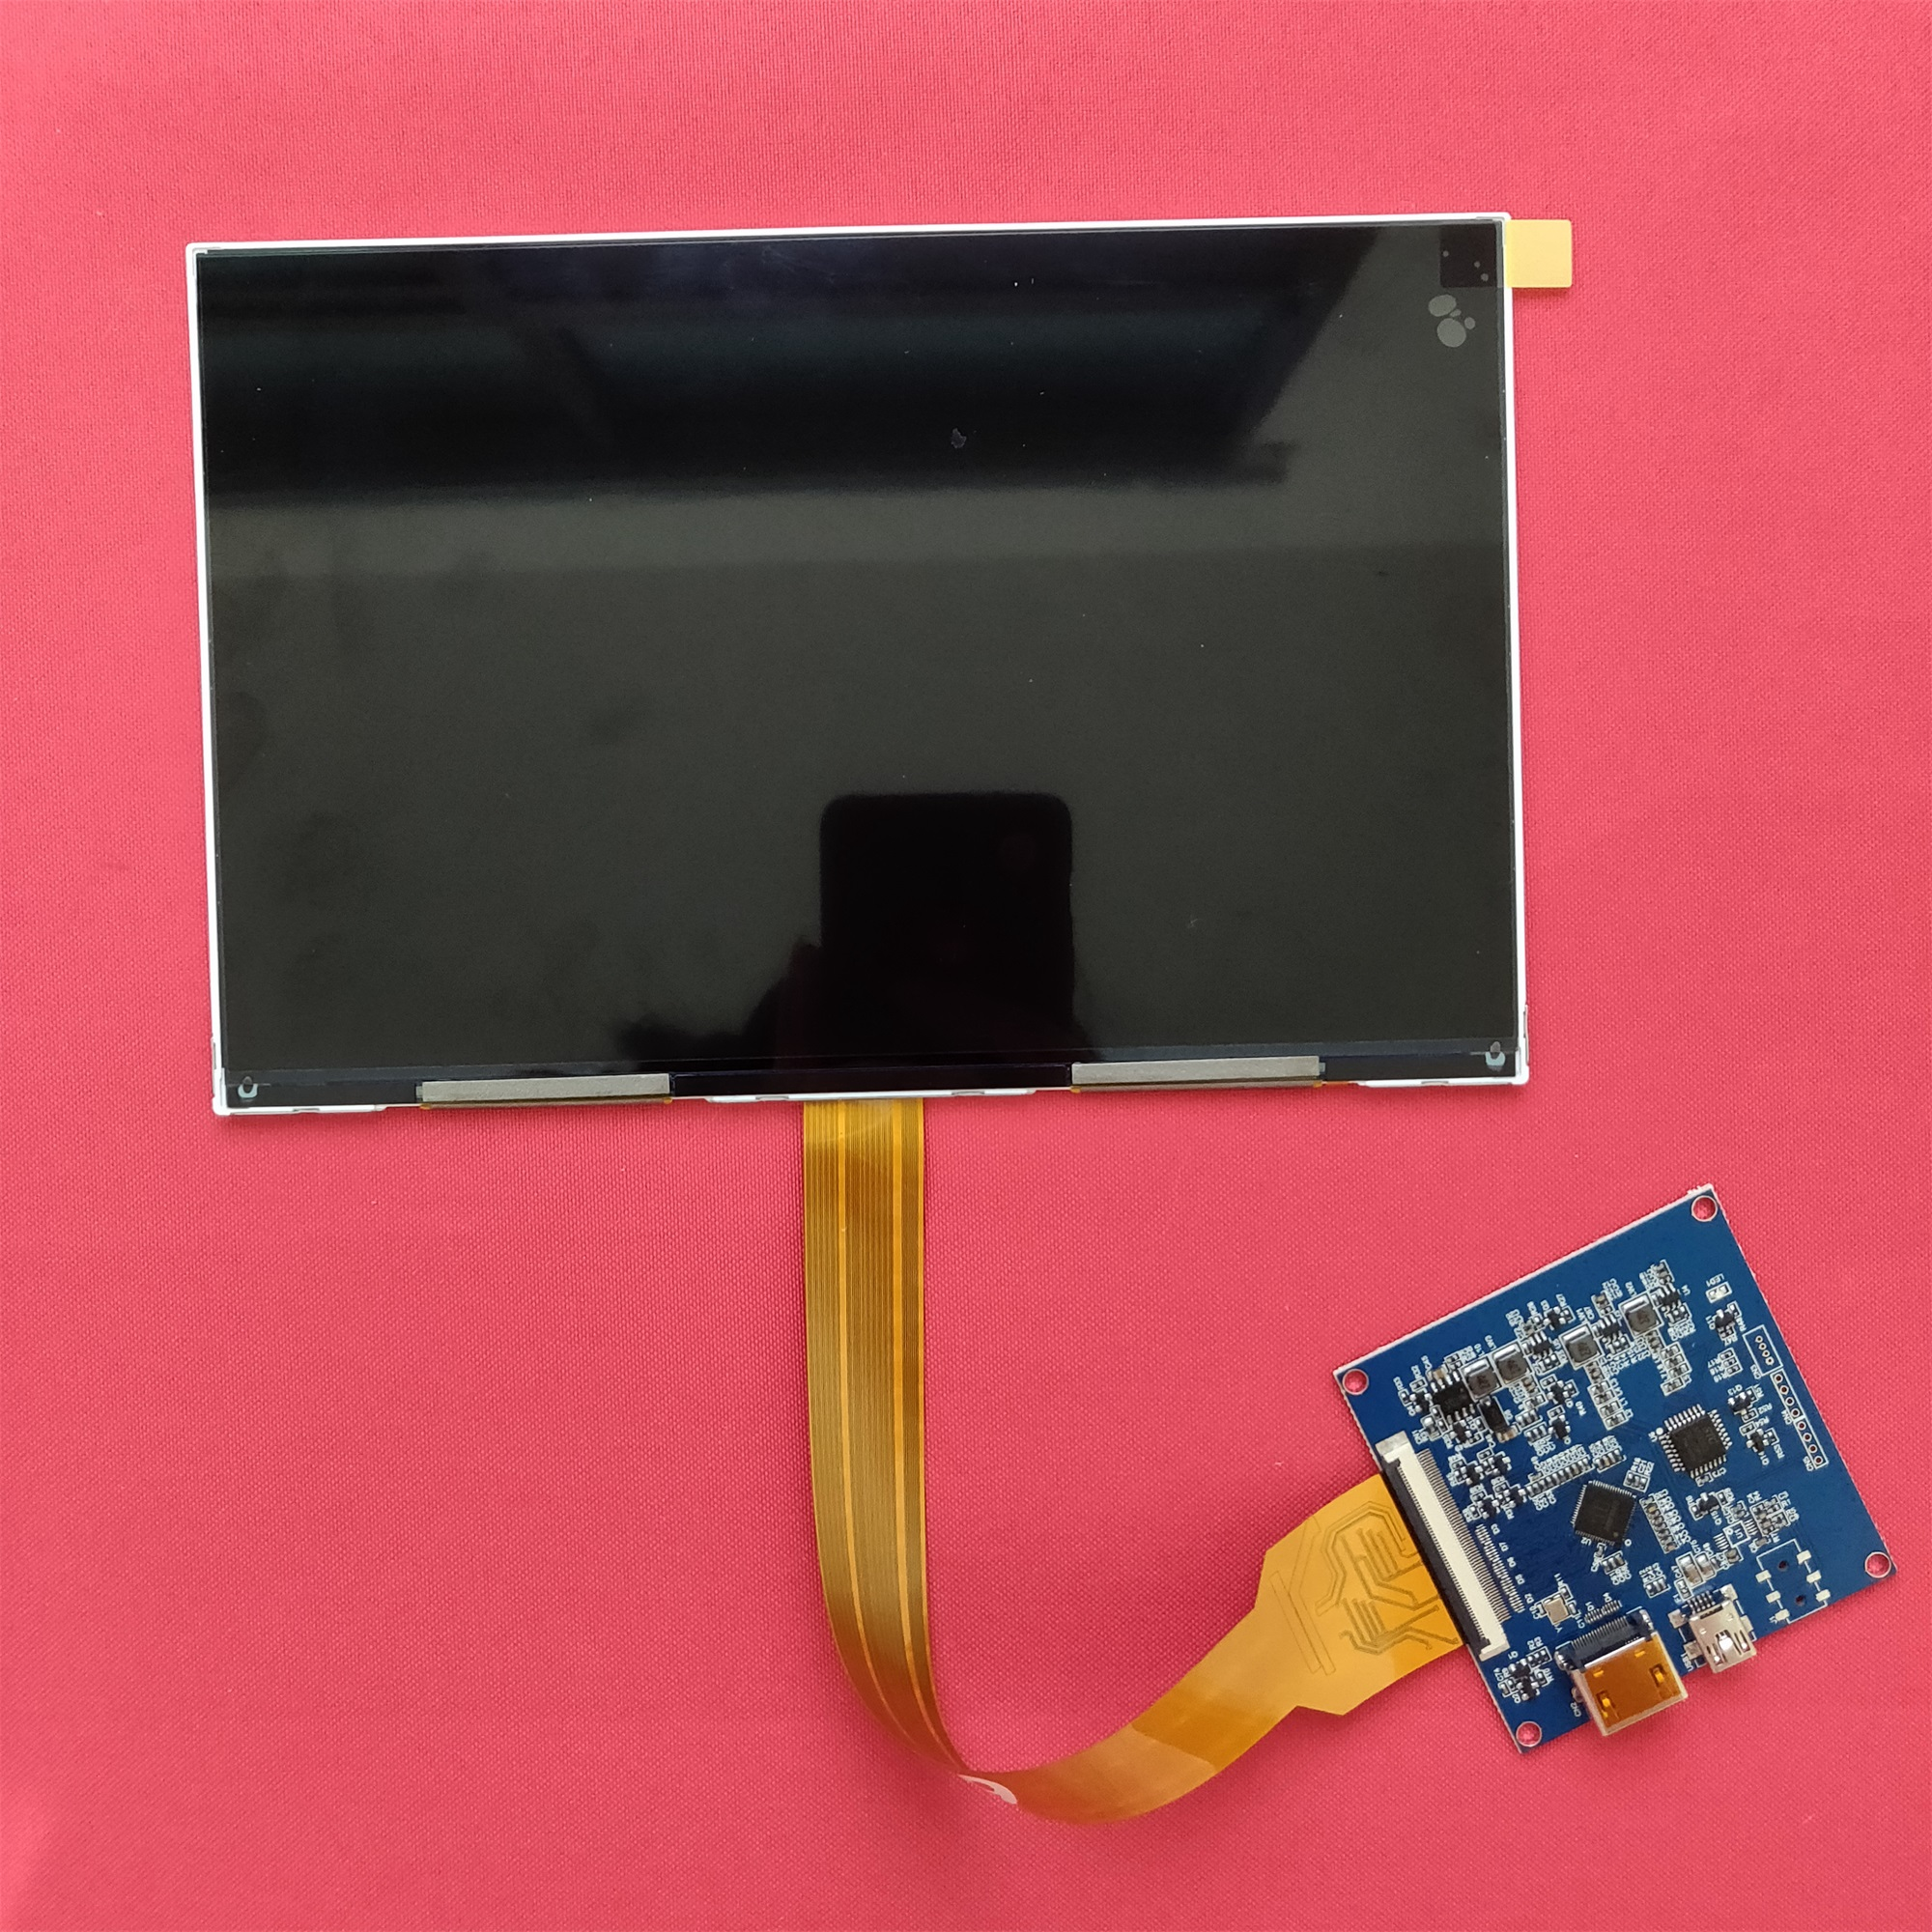 8.9 inch 2560*1600 2k 1440p IPS lcd display 16:10 monitor with HDMI-MIPI driver board 50hz for DIY DLP 3d printer Raspberry PI 38.9 inch 2560*1600 2k 1440p IPS lcd display 16:10 monitor with HDMI-MIPI driver board 50hz for DIY DLP 3d printer Raspberry PI 3